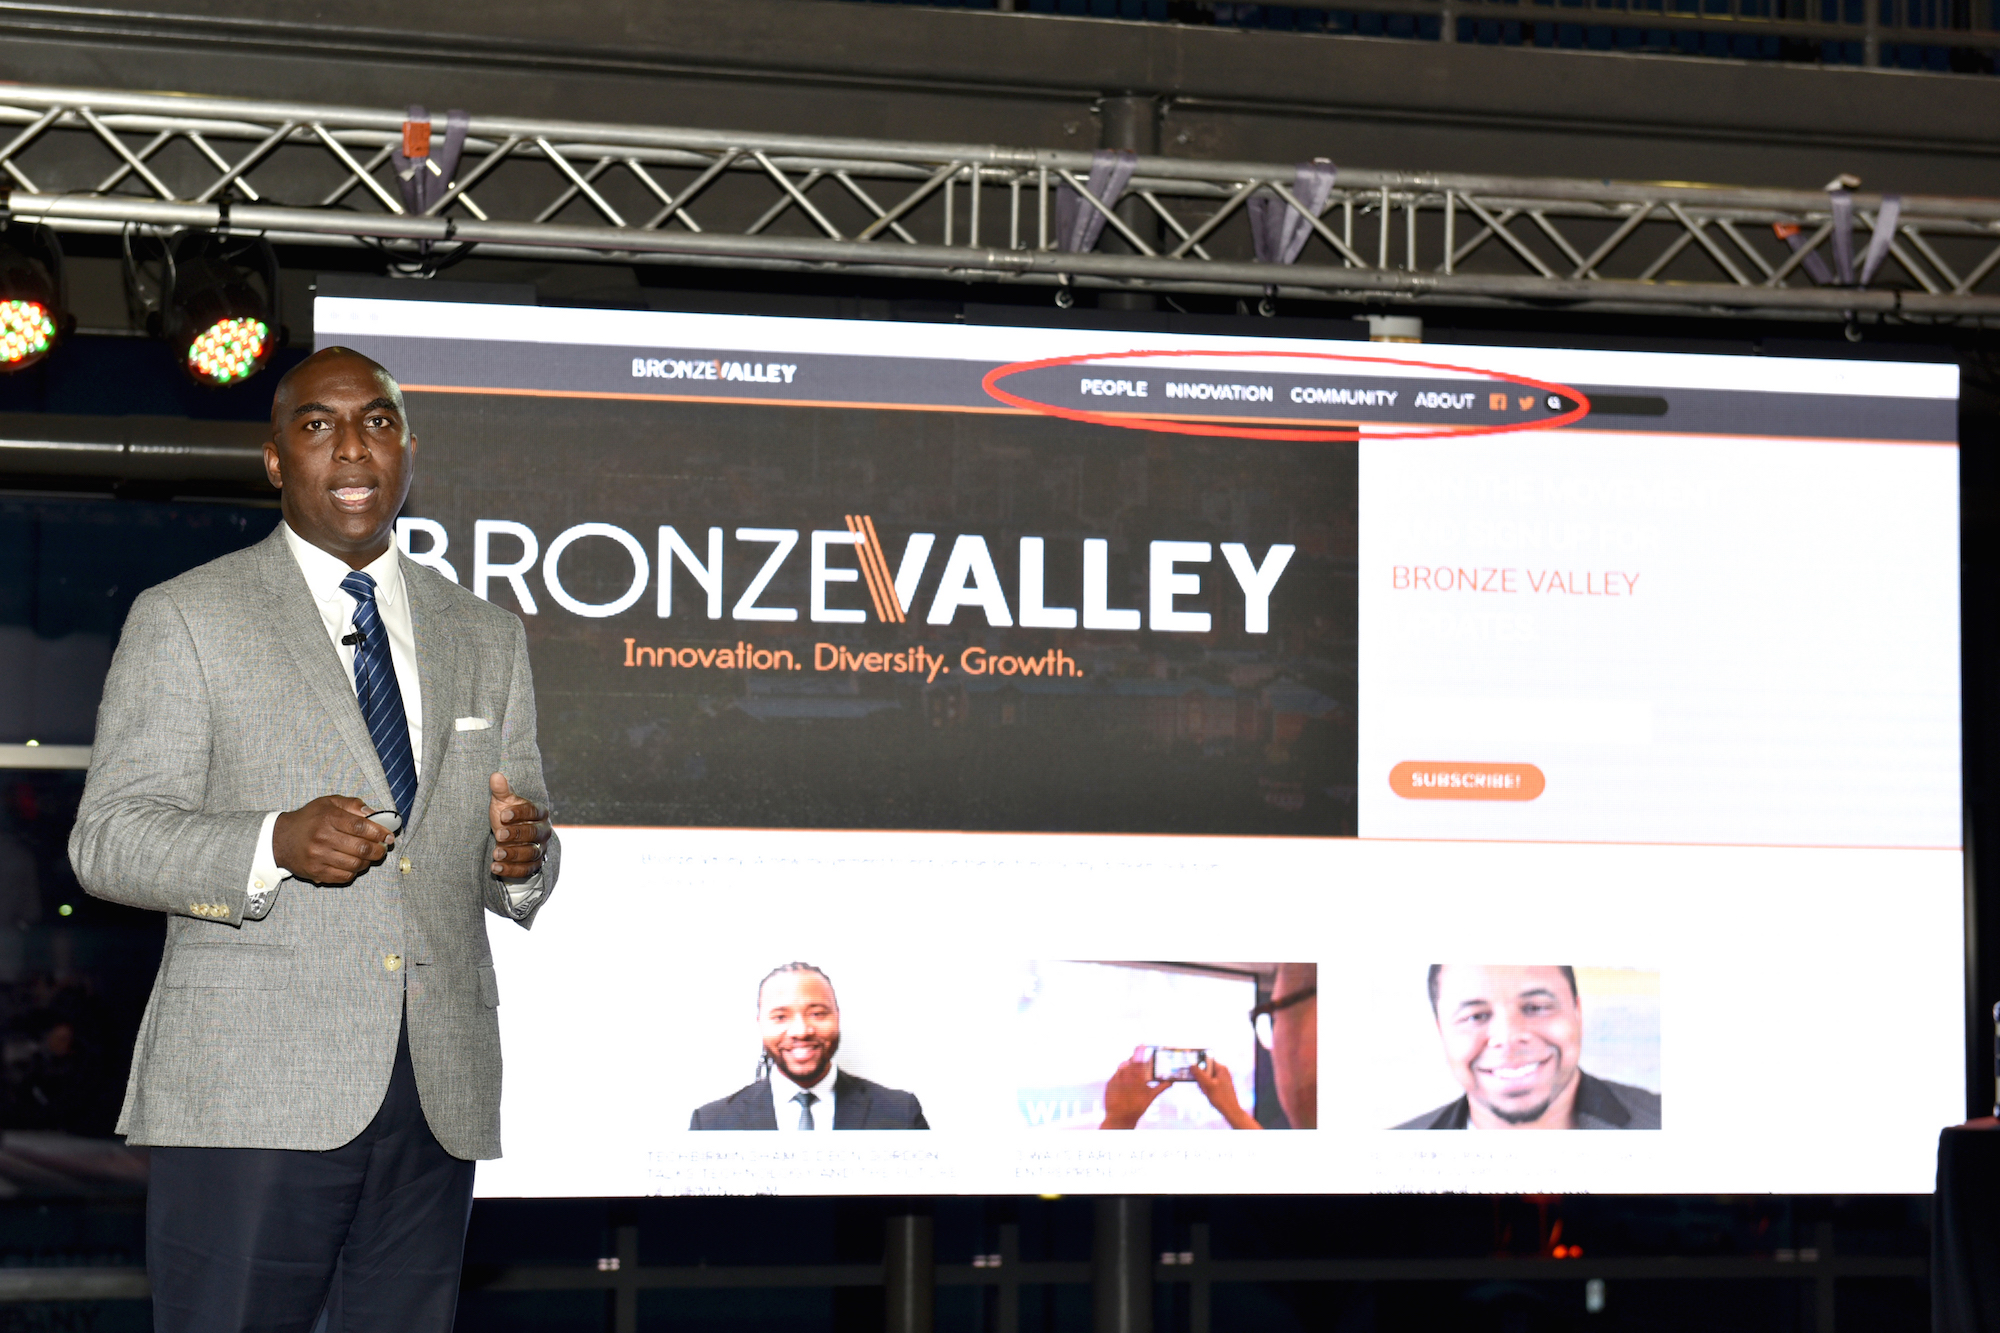 Bronze Valley unveils plans for the future and digital platform